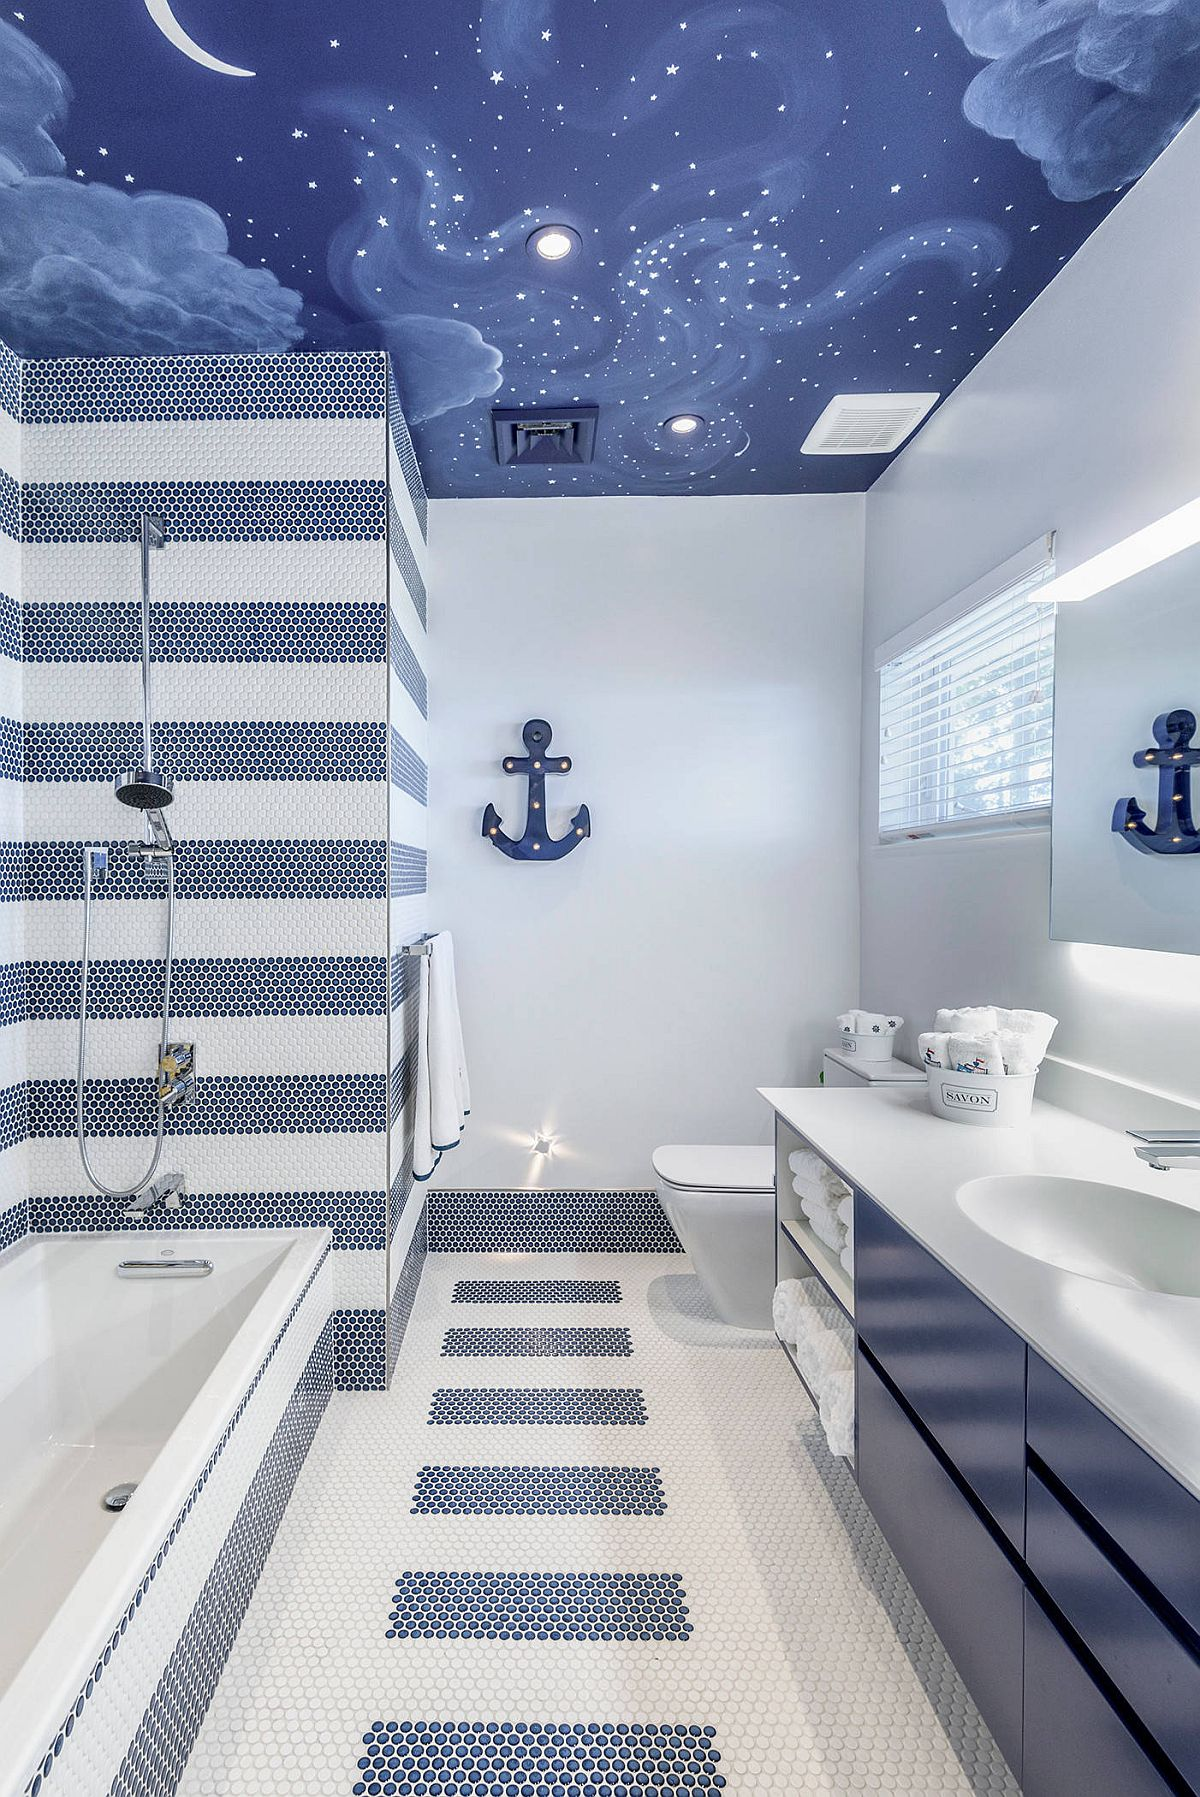 Painted ceiling and lovely use of blue and white tiles creates a stylish kids' bathroom